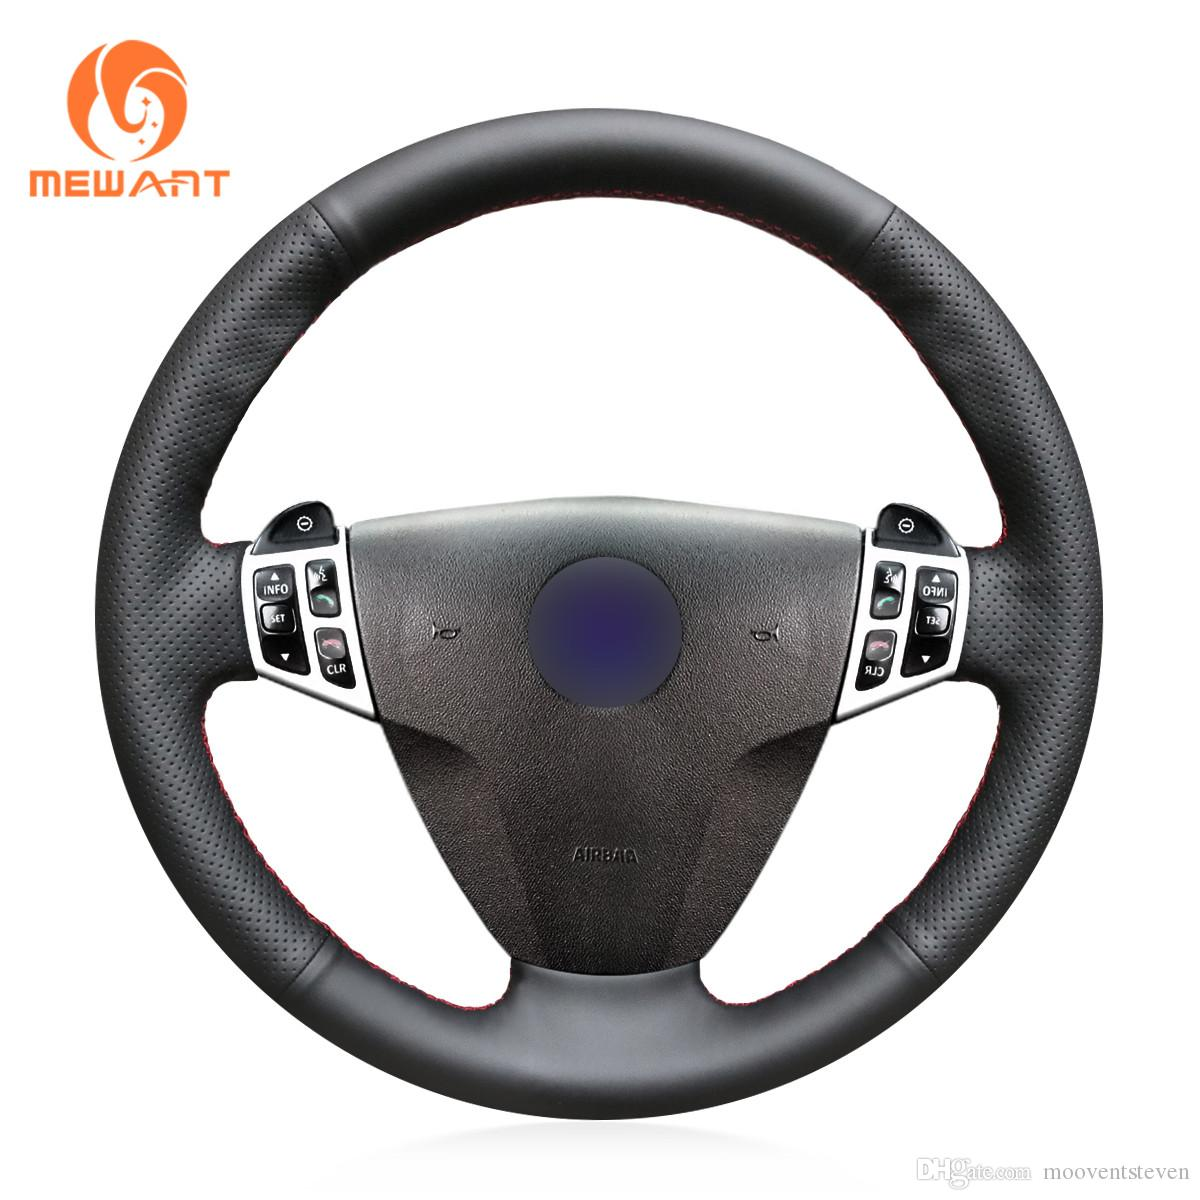 MEWANT Hand-stitched Black Genuine Leather Steering Wheel Cover Wrap for Saab 9-3 2003 2004 2005 2006 2007 2008 2009 2010 2011